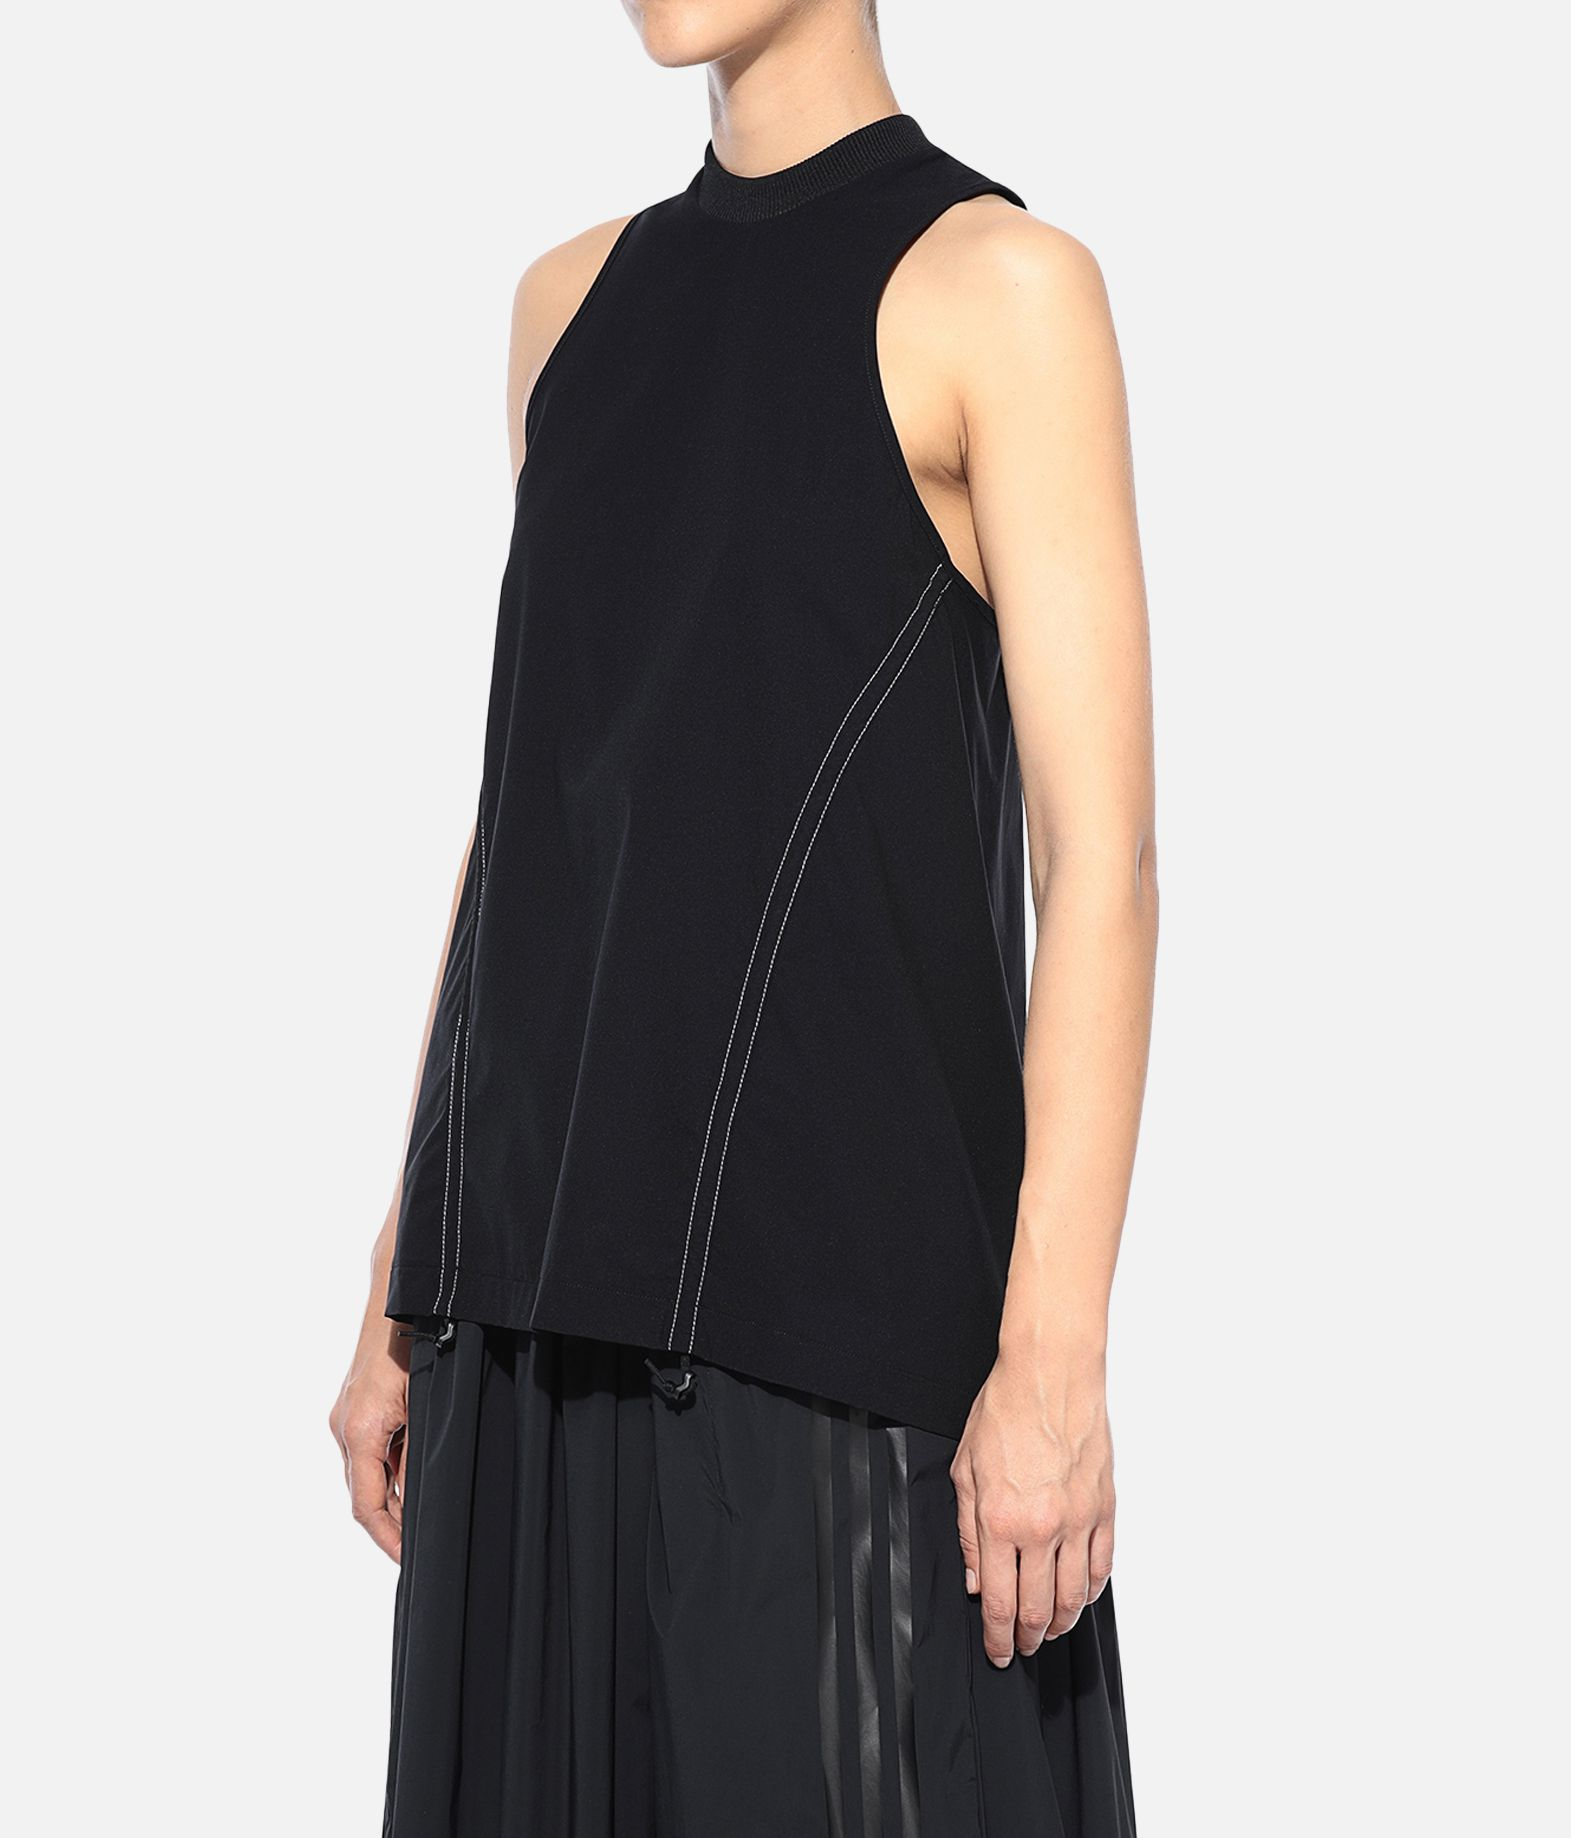 Y-3 Y-3 Light 3-Stripes Tank Top Top Woman e